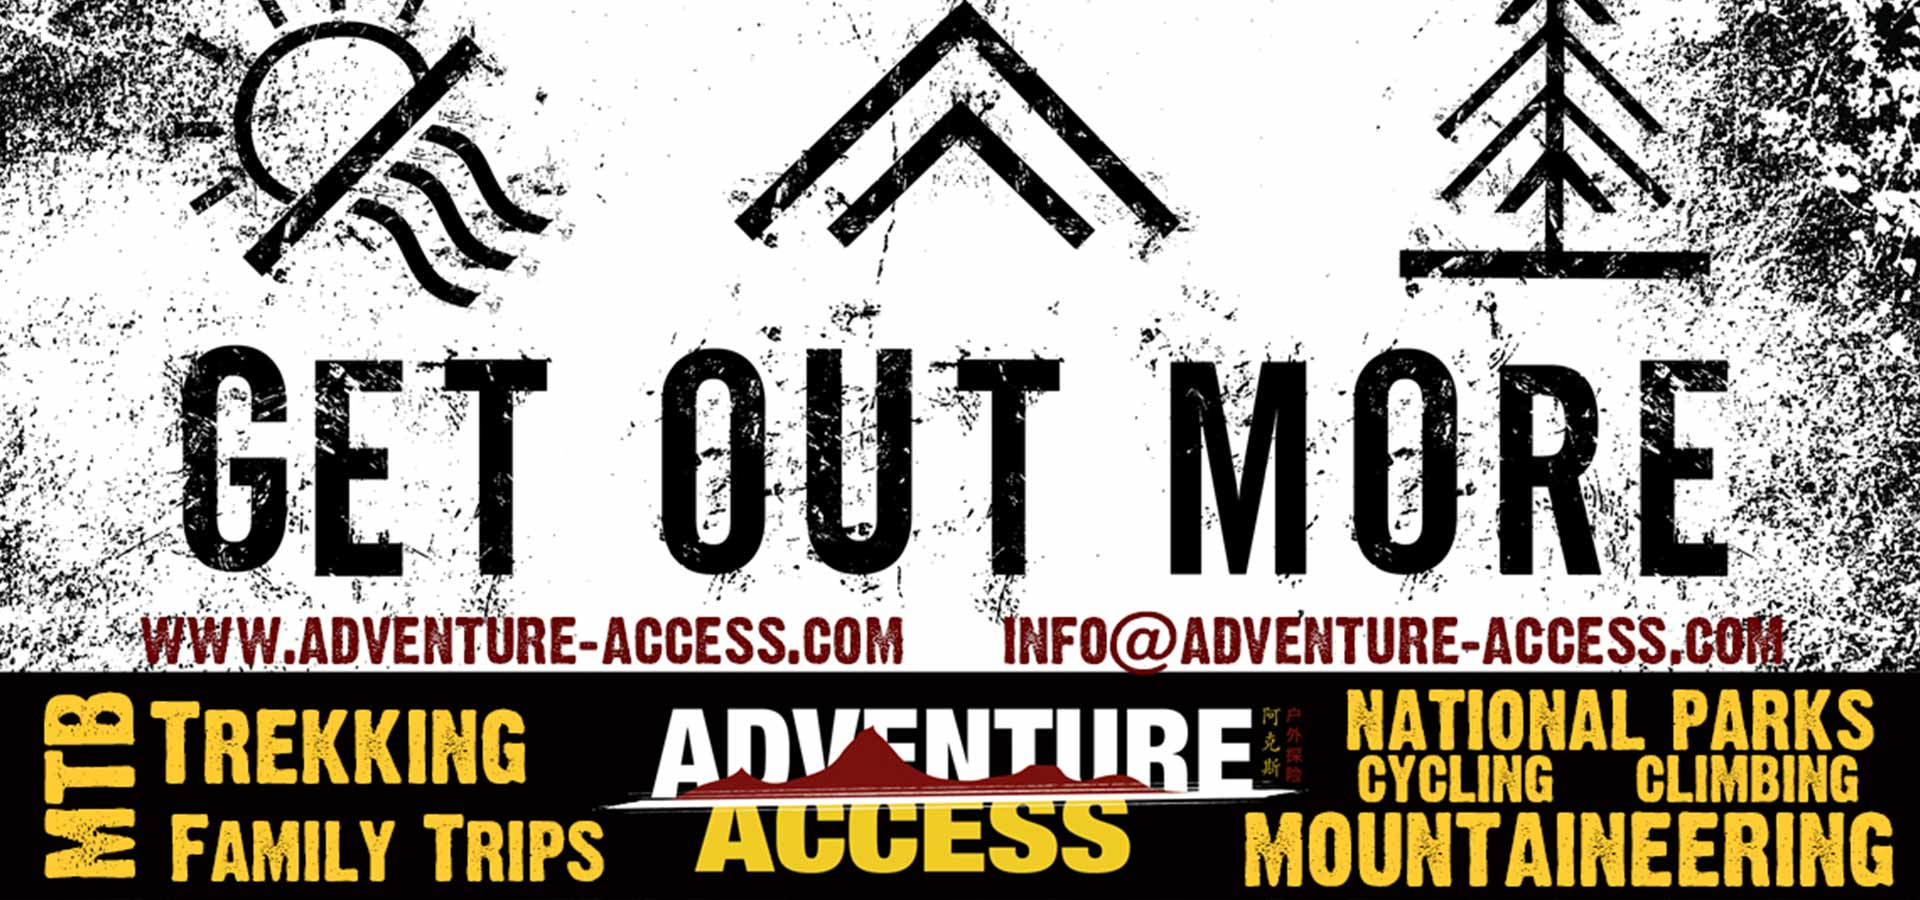 New-blog-post-Adventure-Access- Xian Get Out More